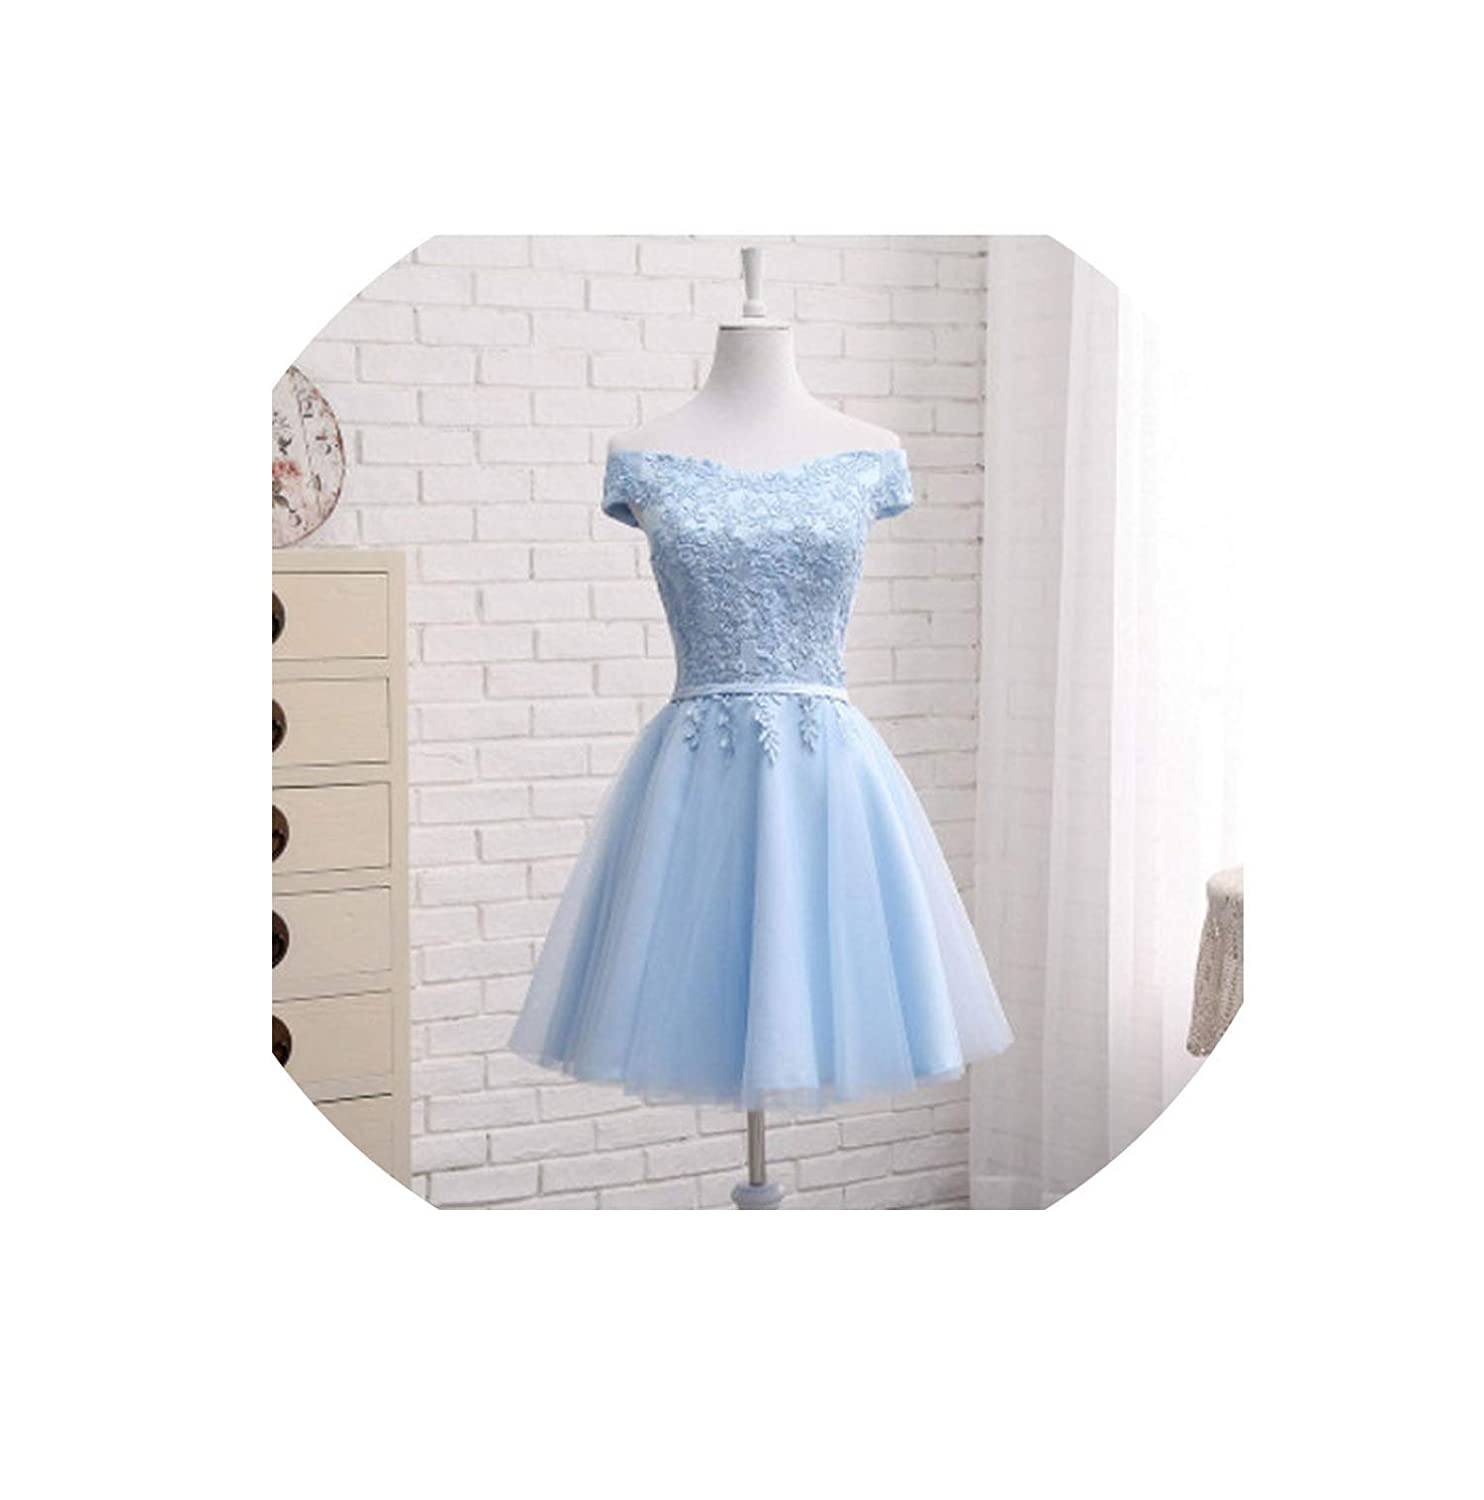 bluee short Bridesmaid Dresses FloorLength Boat Neck Cap Sleeve Applique Embroidery Dress